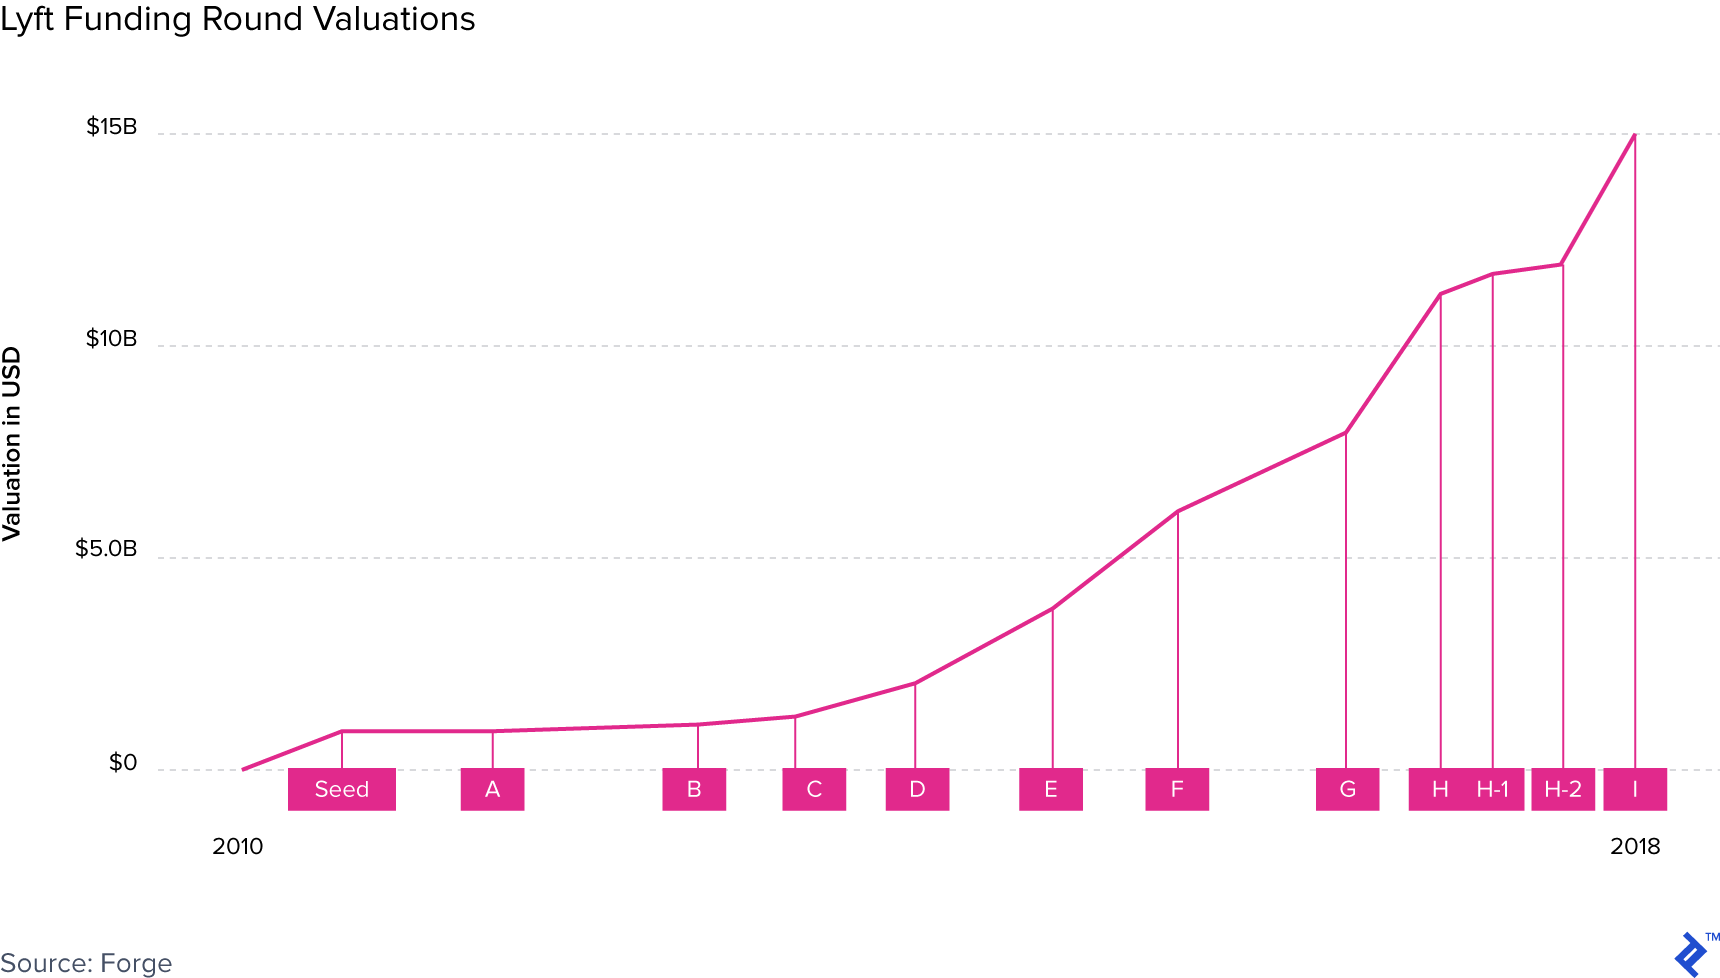 Graph illustrating Lyft funding round valuations.